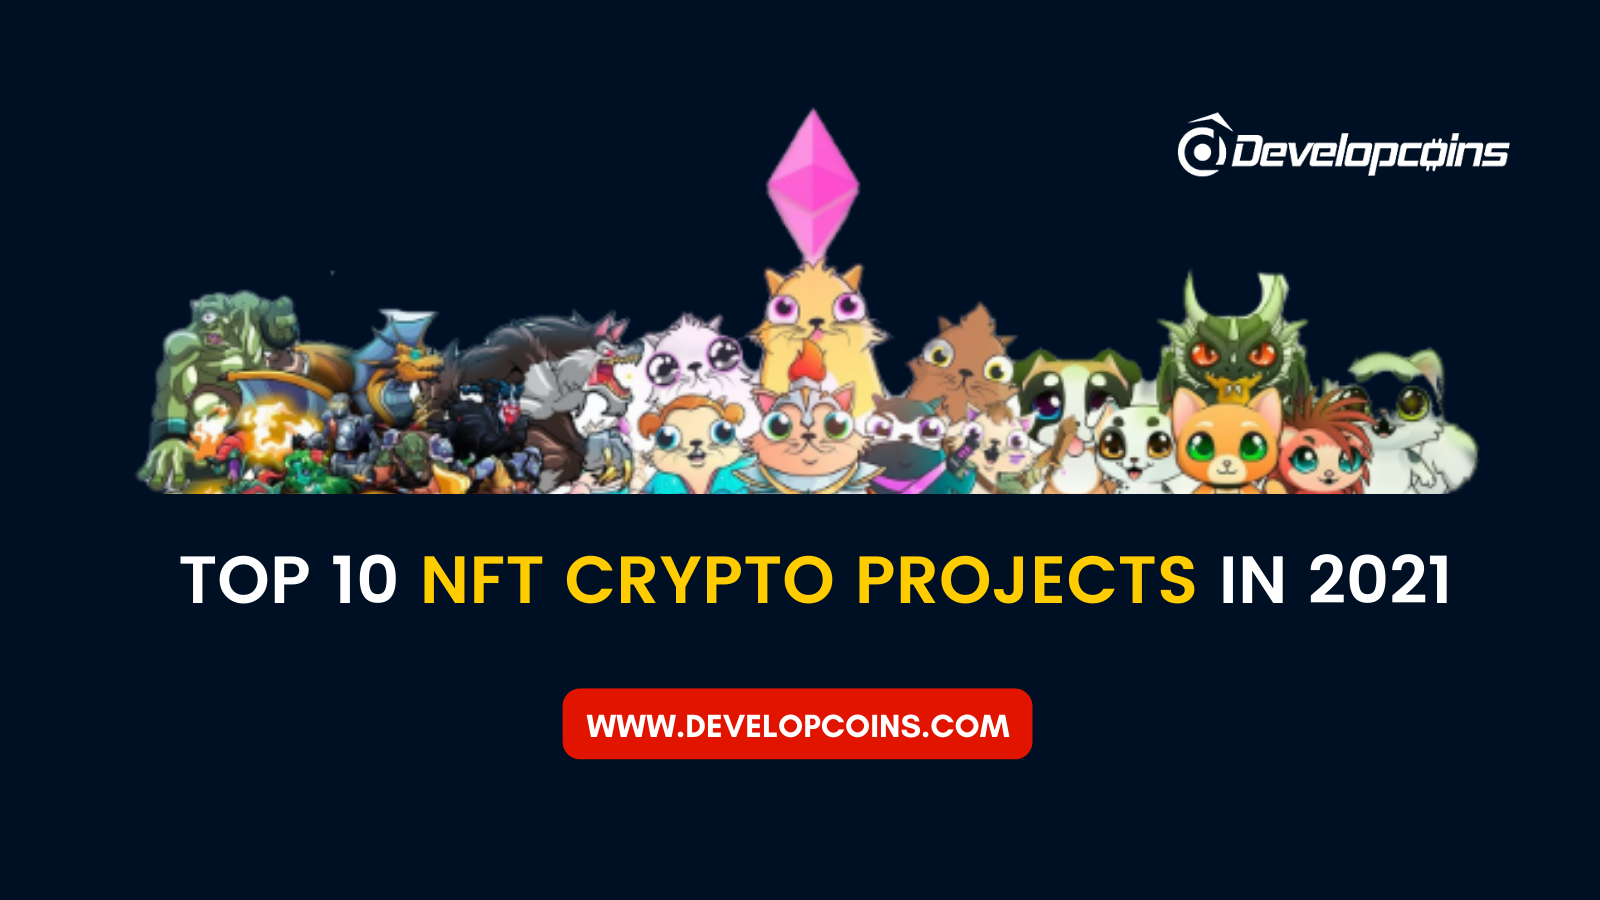 Top 10 NFT Crypto Projects In 2021